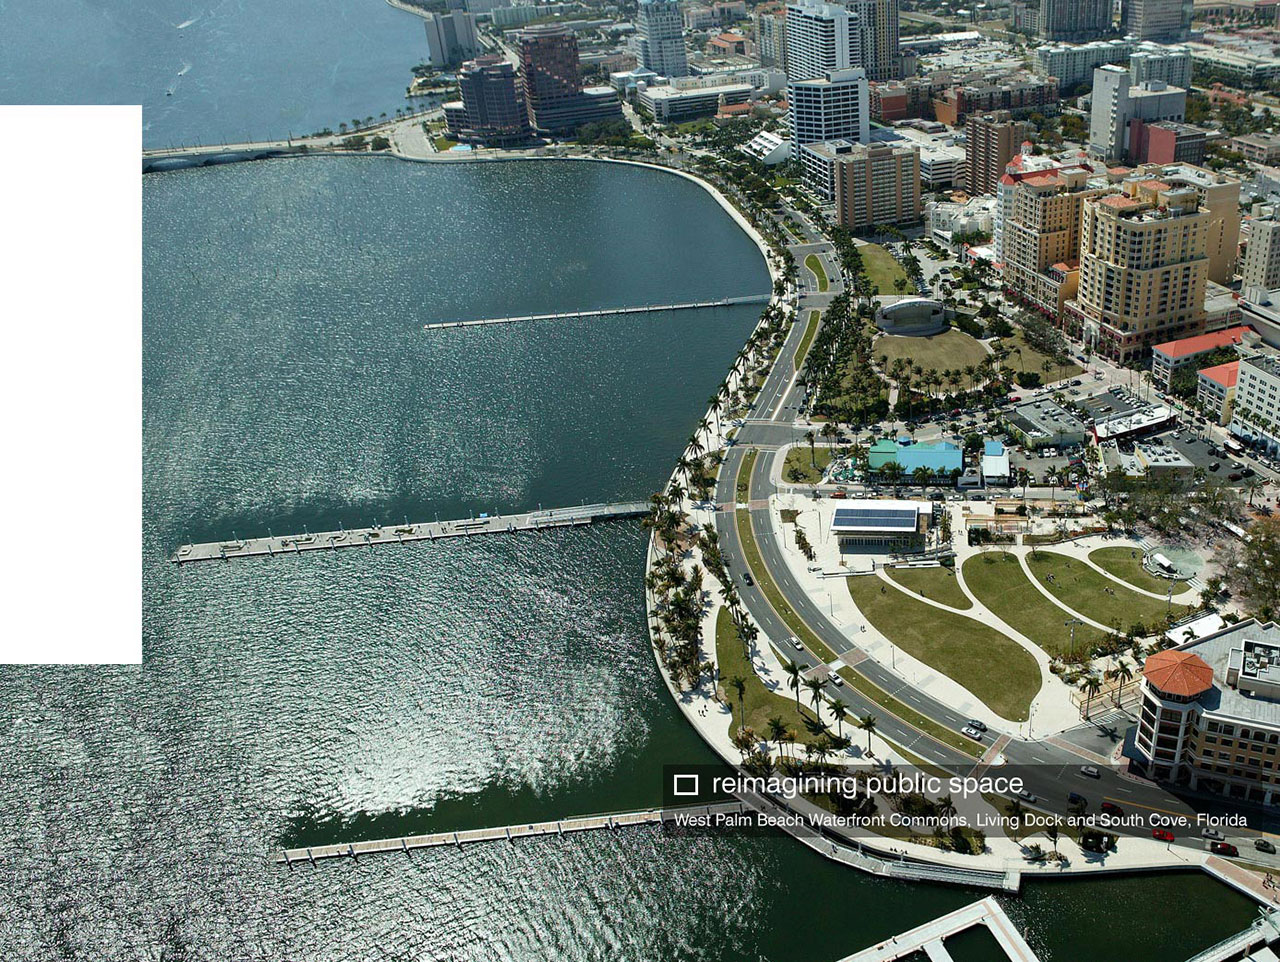 Michael_Singer_West_Palm_Beach_Waterfront_P4_Intro_f